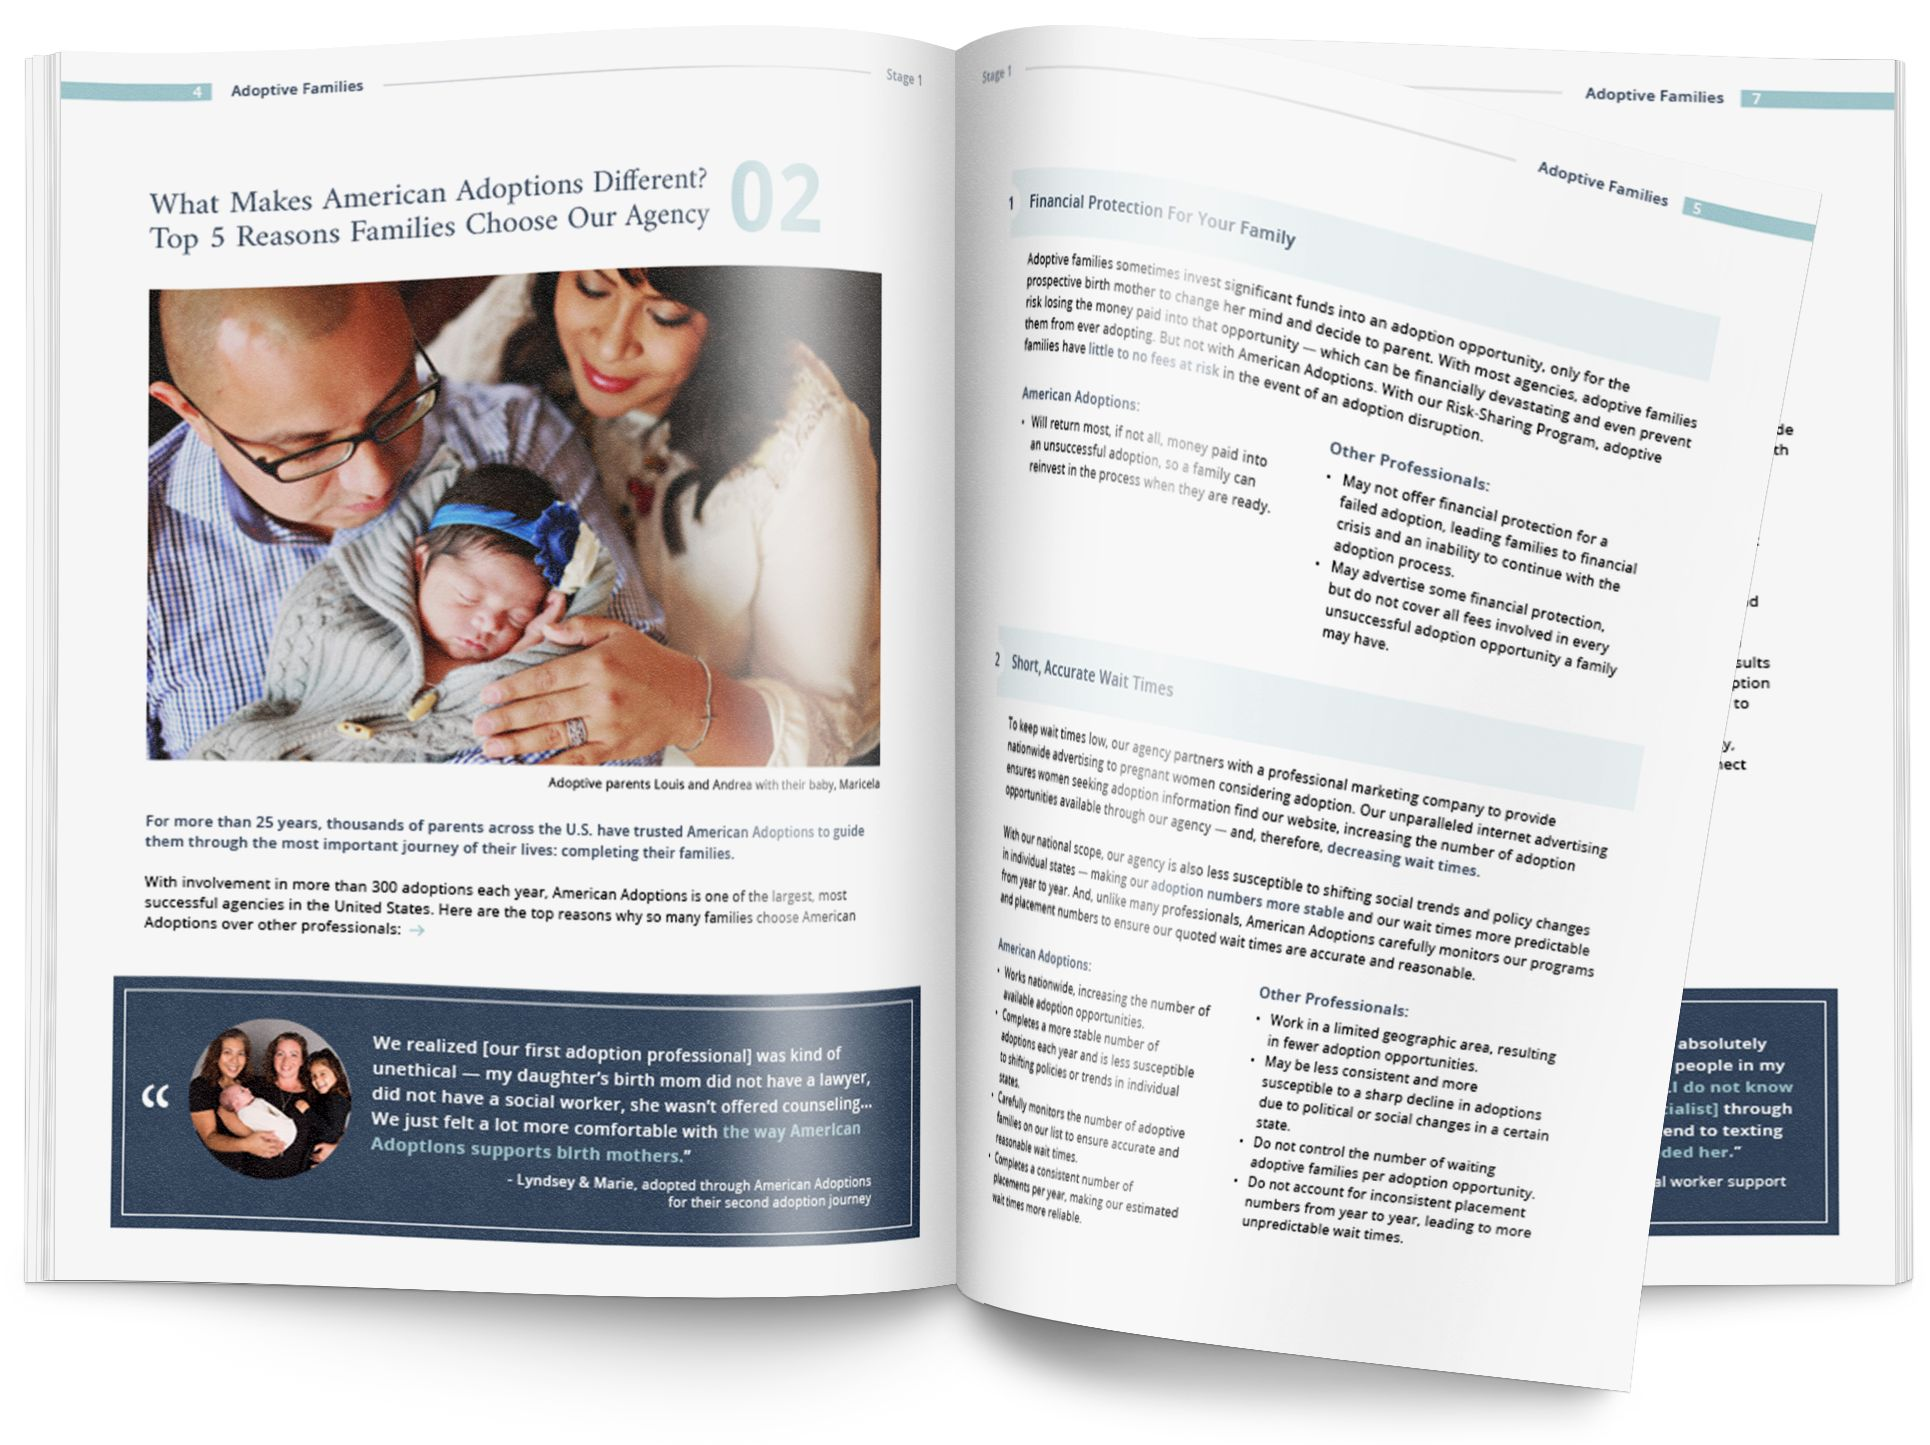 Adoption: A Guide for Families Considering Adoption